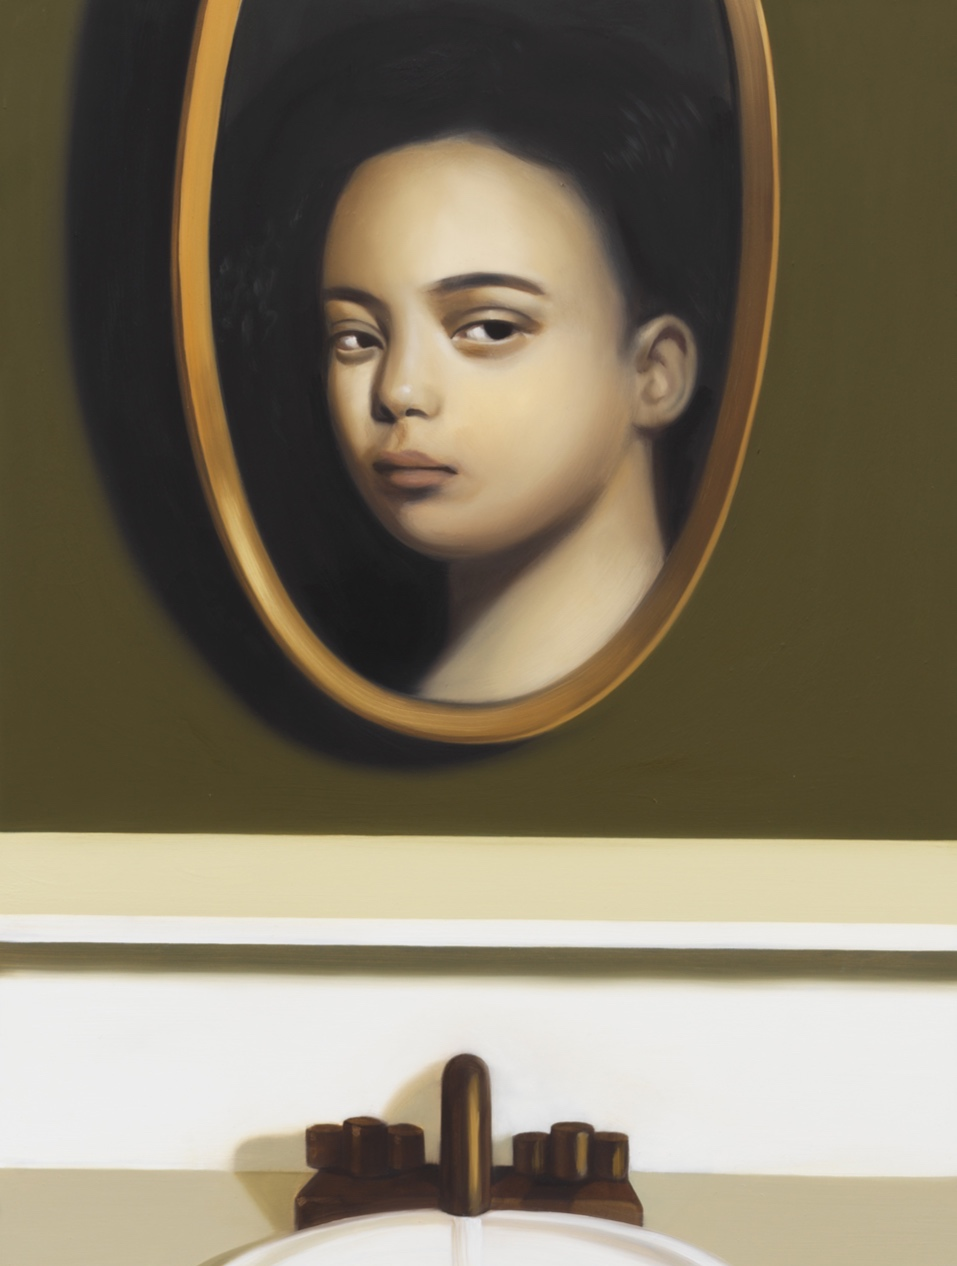 Seeing Eye to Eye,  2019, Oil on panel 24 x 18 inches (60.96 x 45.72 cm)